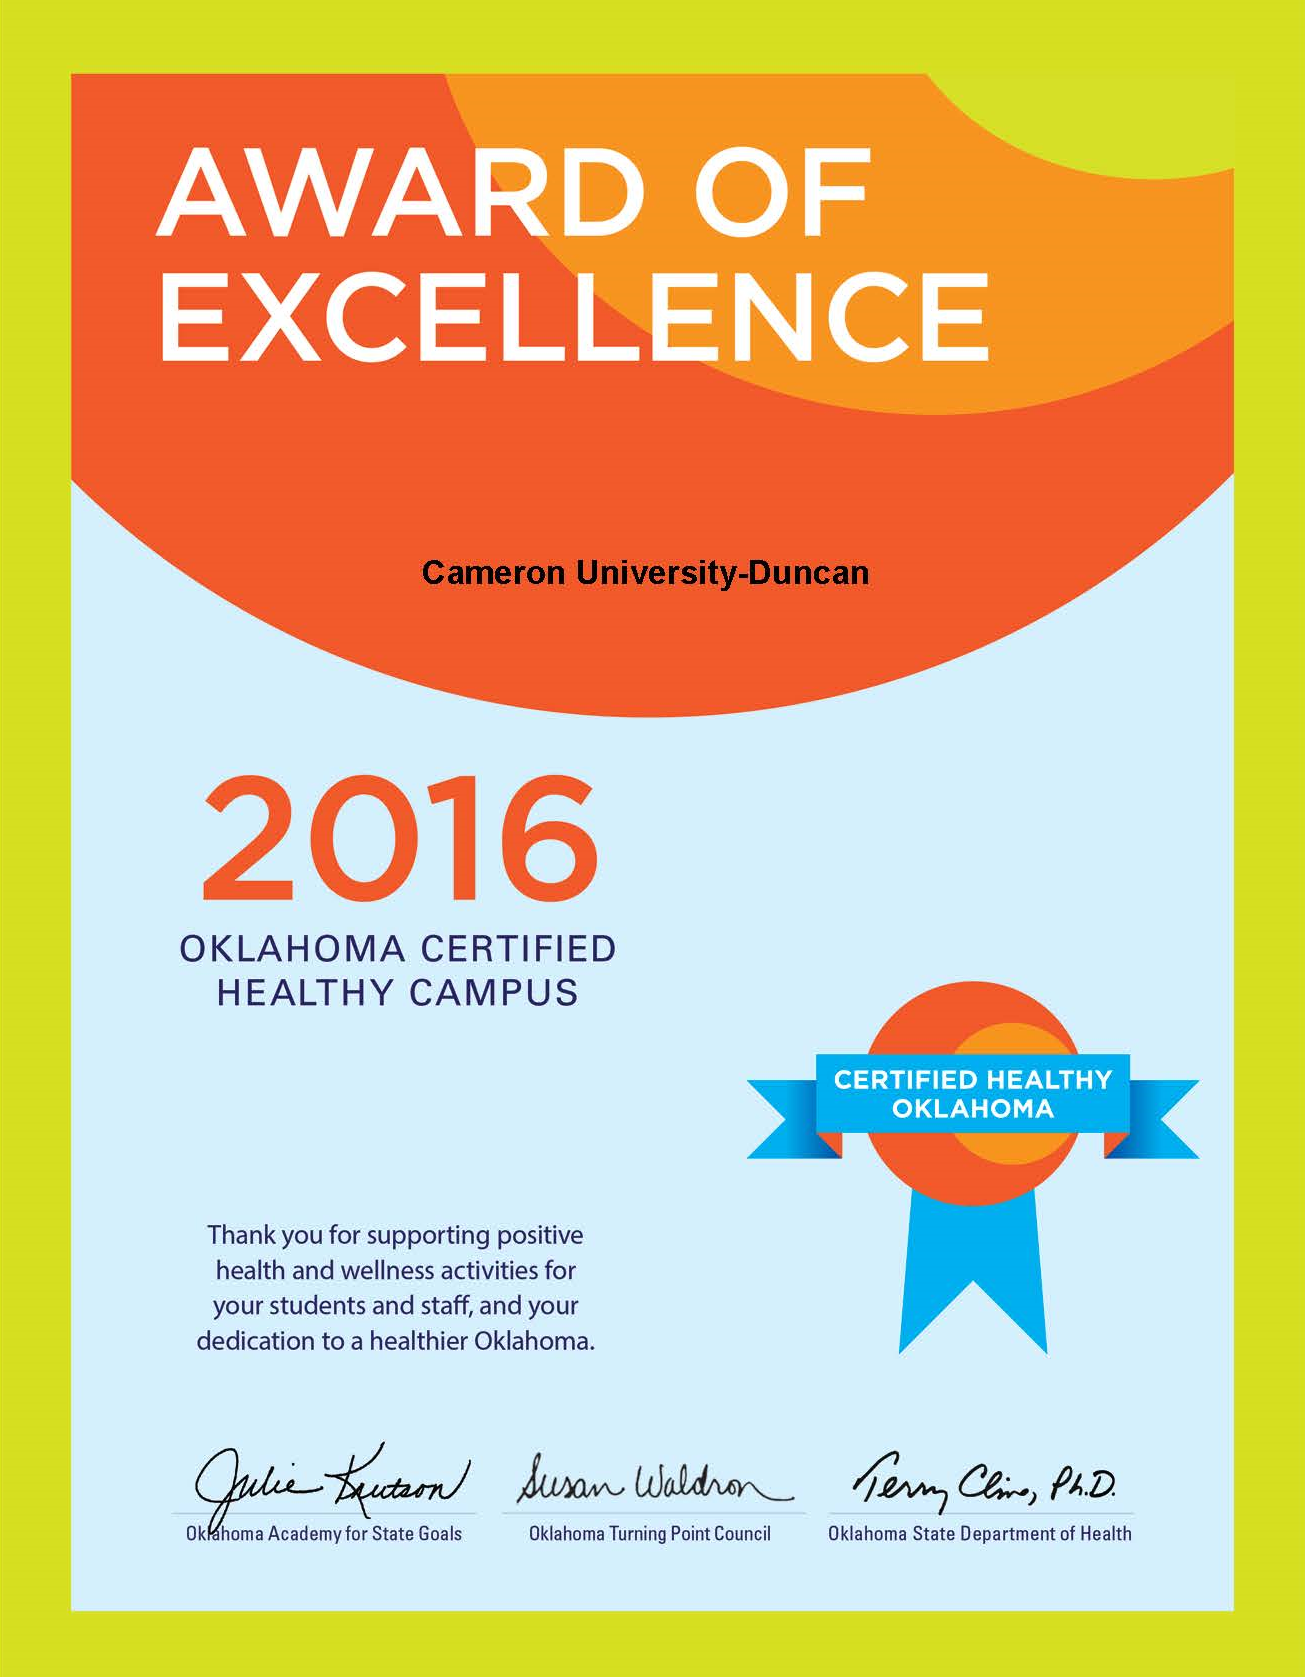 2016 Award of Excellence